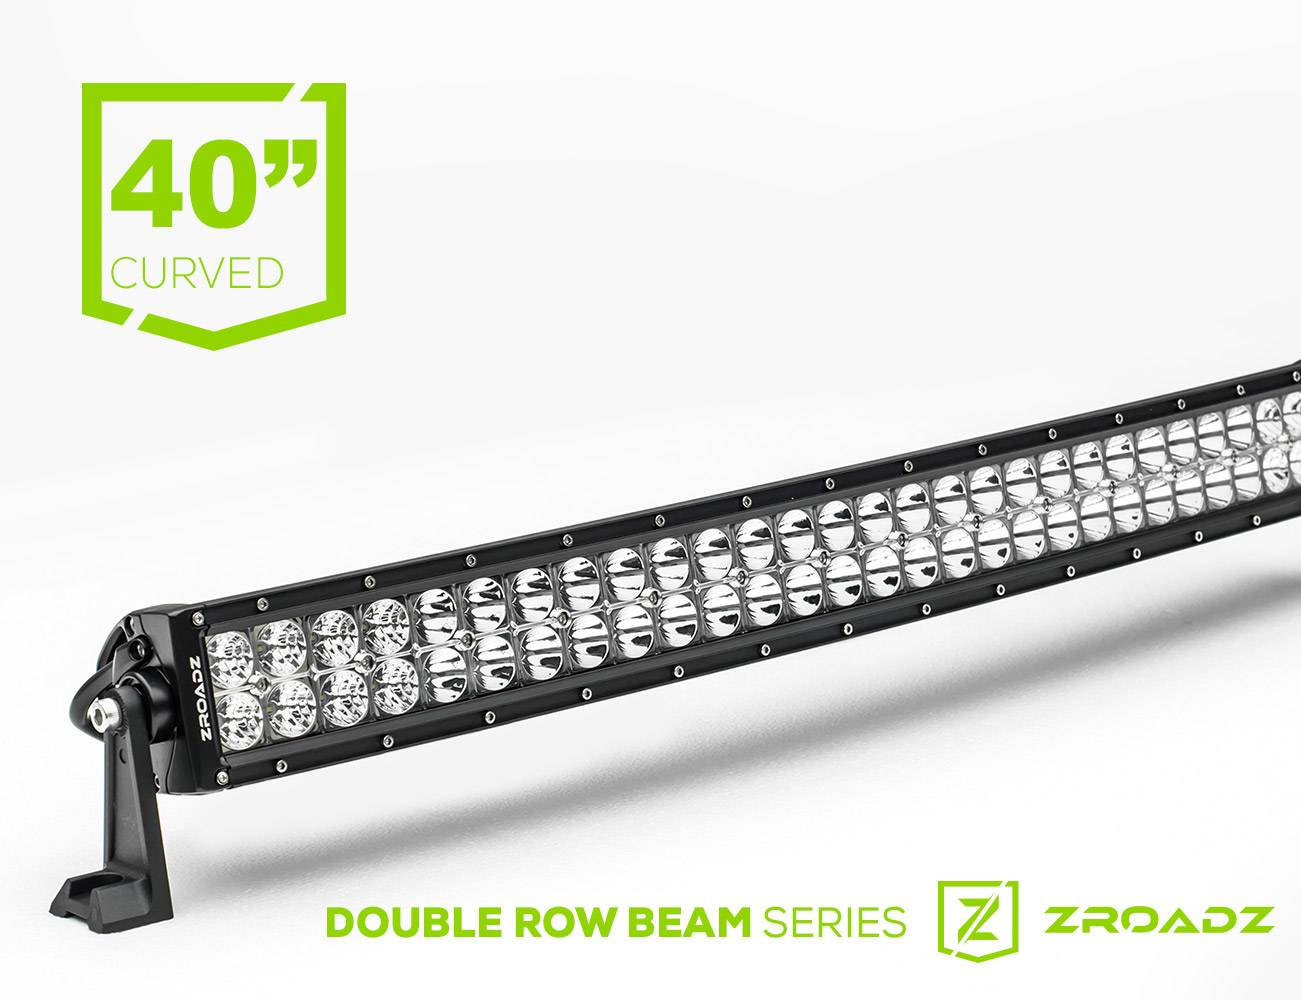 ZROADZ                                             - 40 Inch LED Curved Double Row Light Bar - PN #Z30CBC14W240